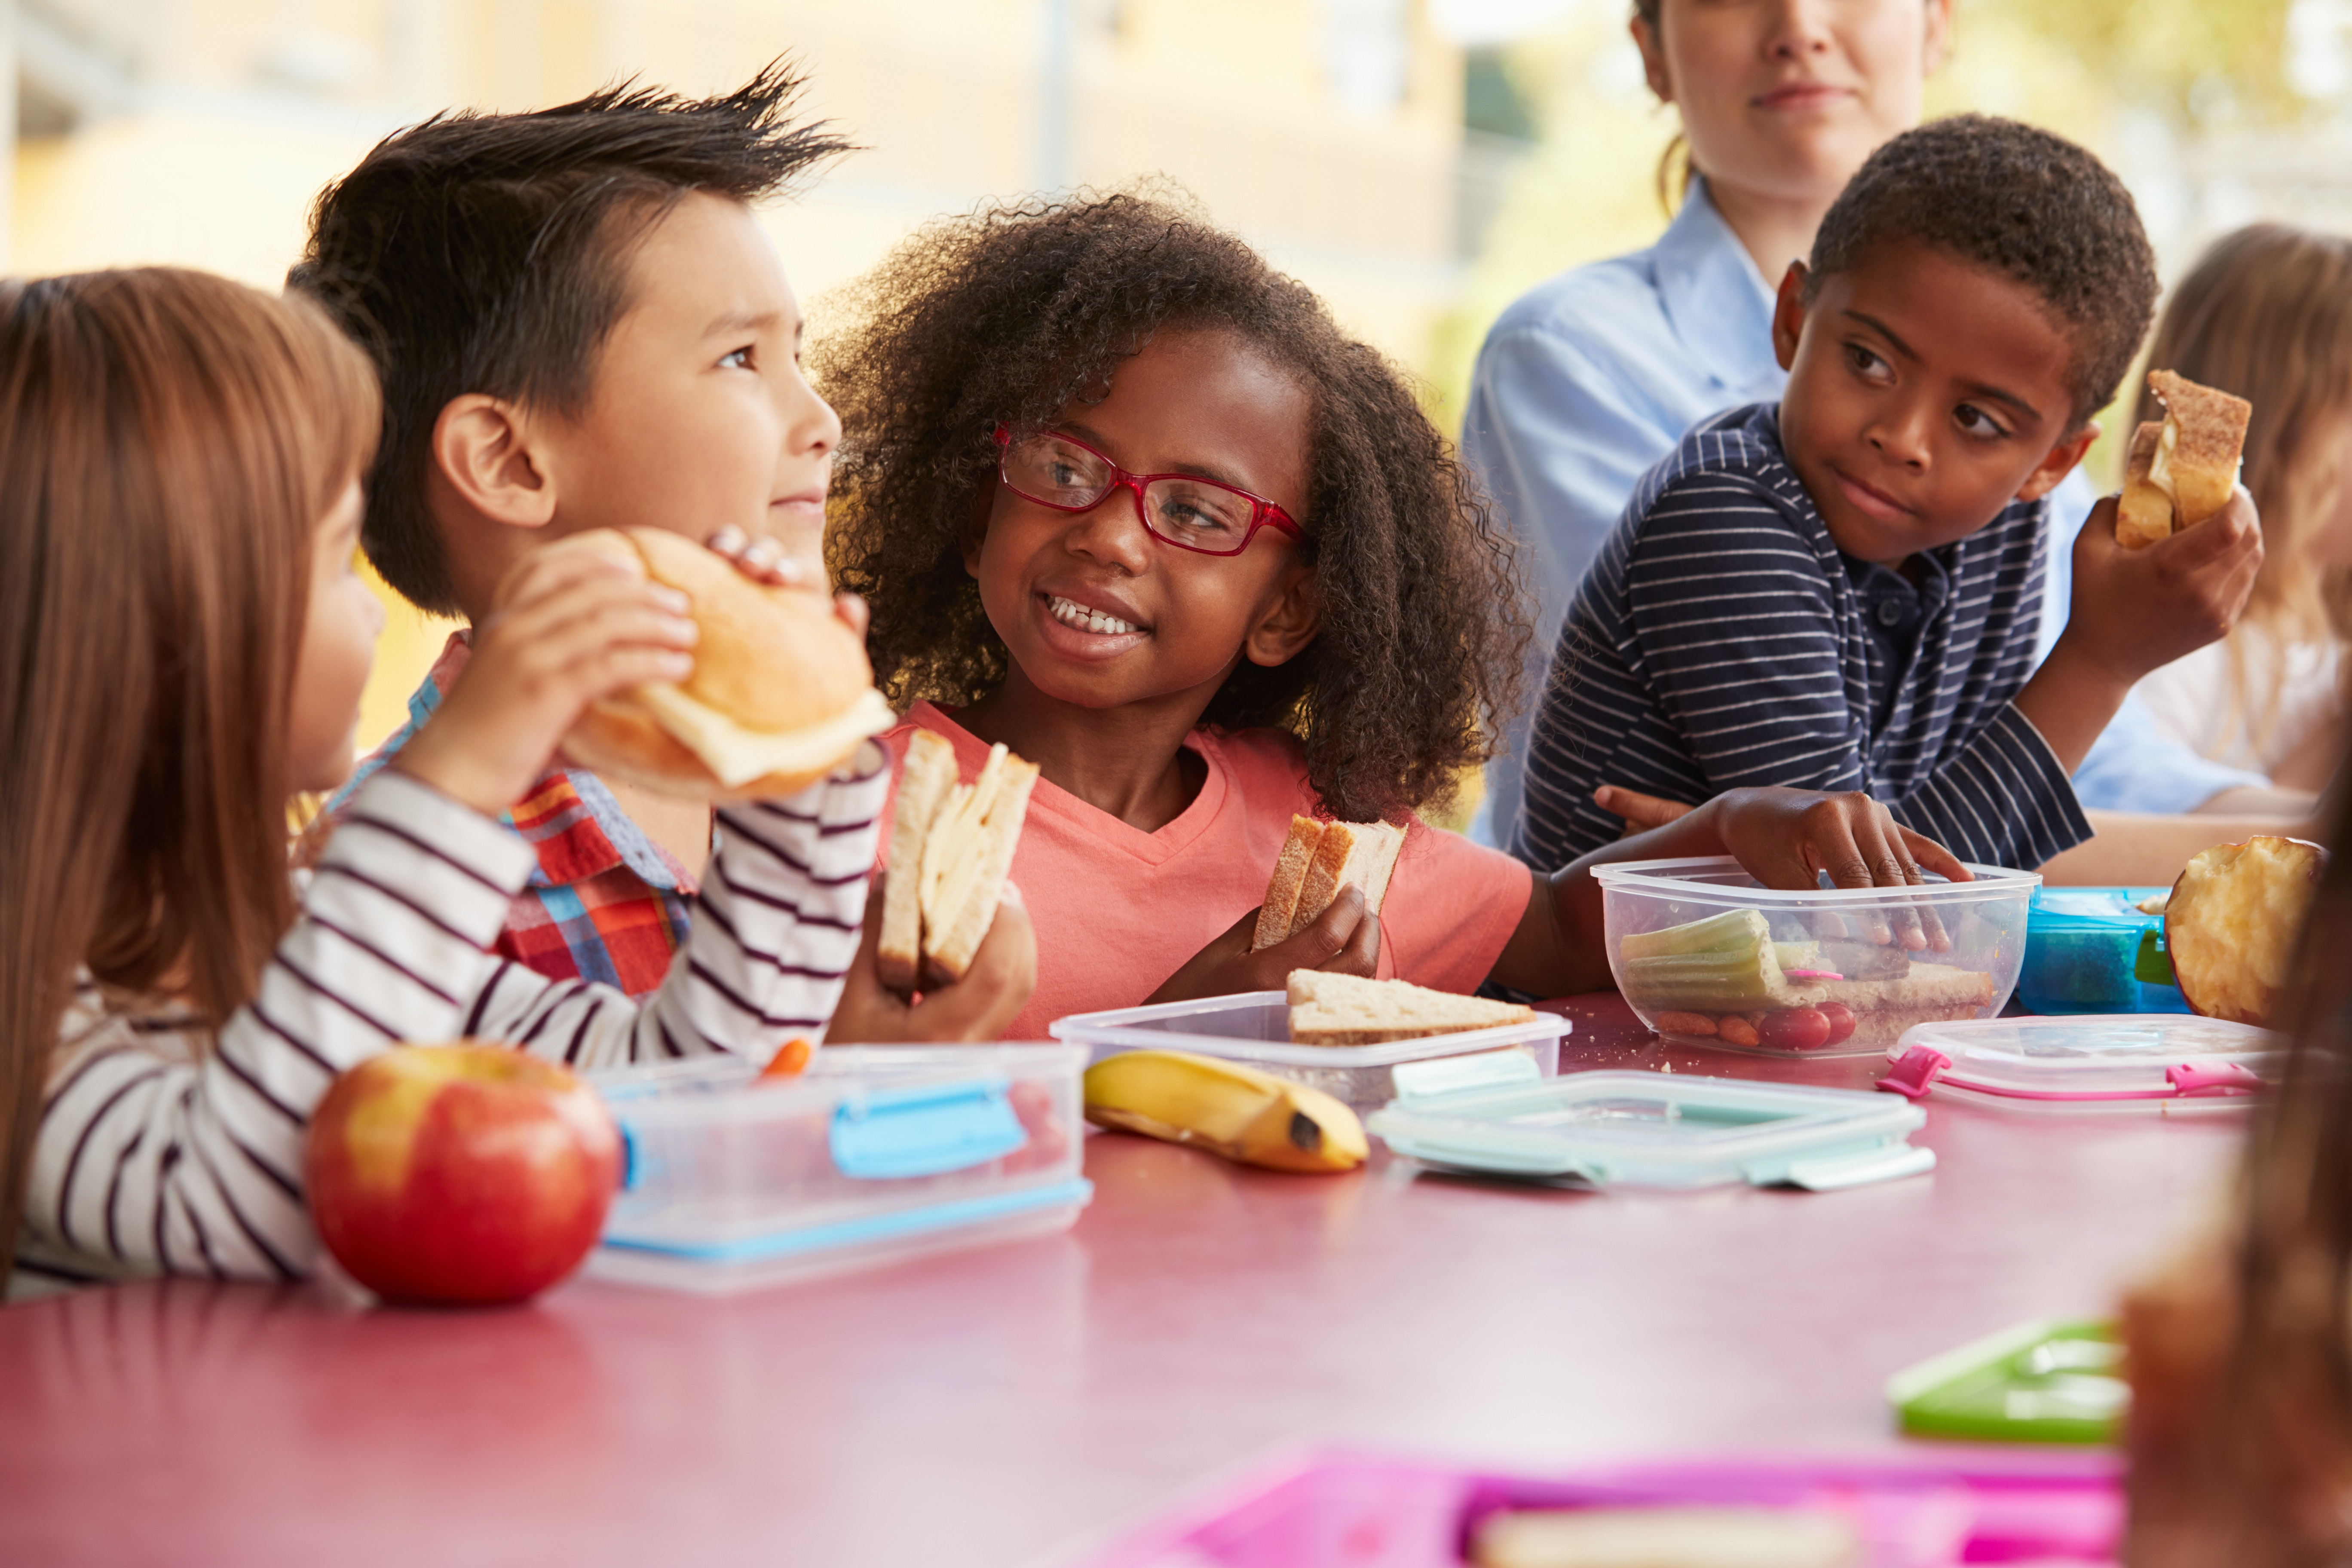 Children talking and eating packed lunches at a table